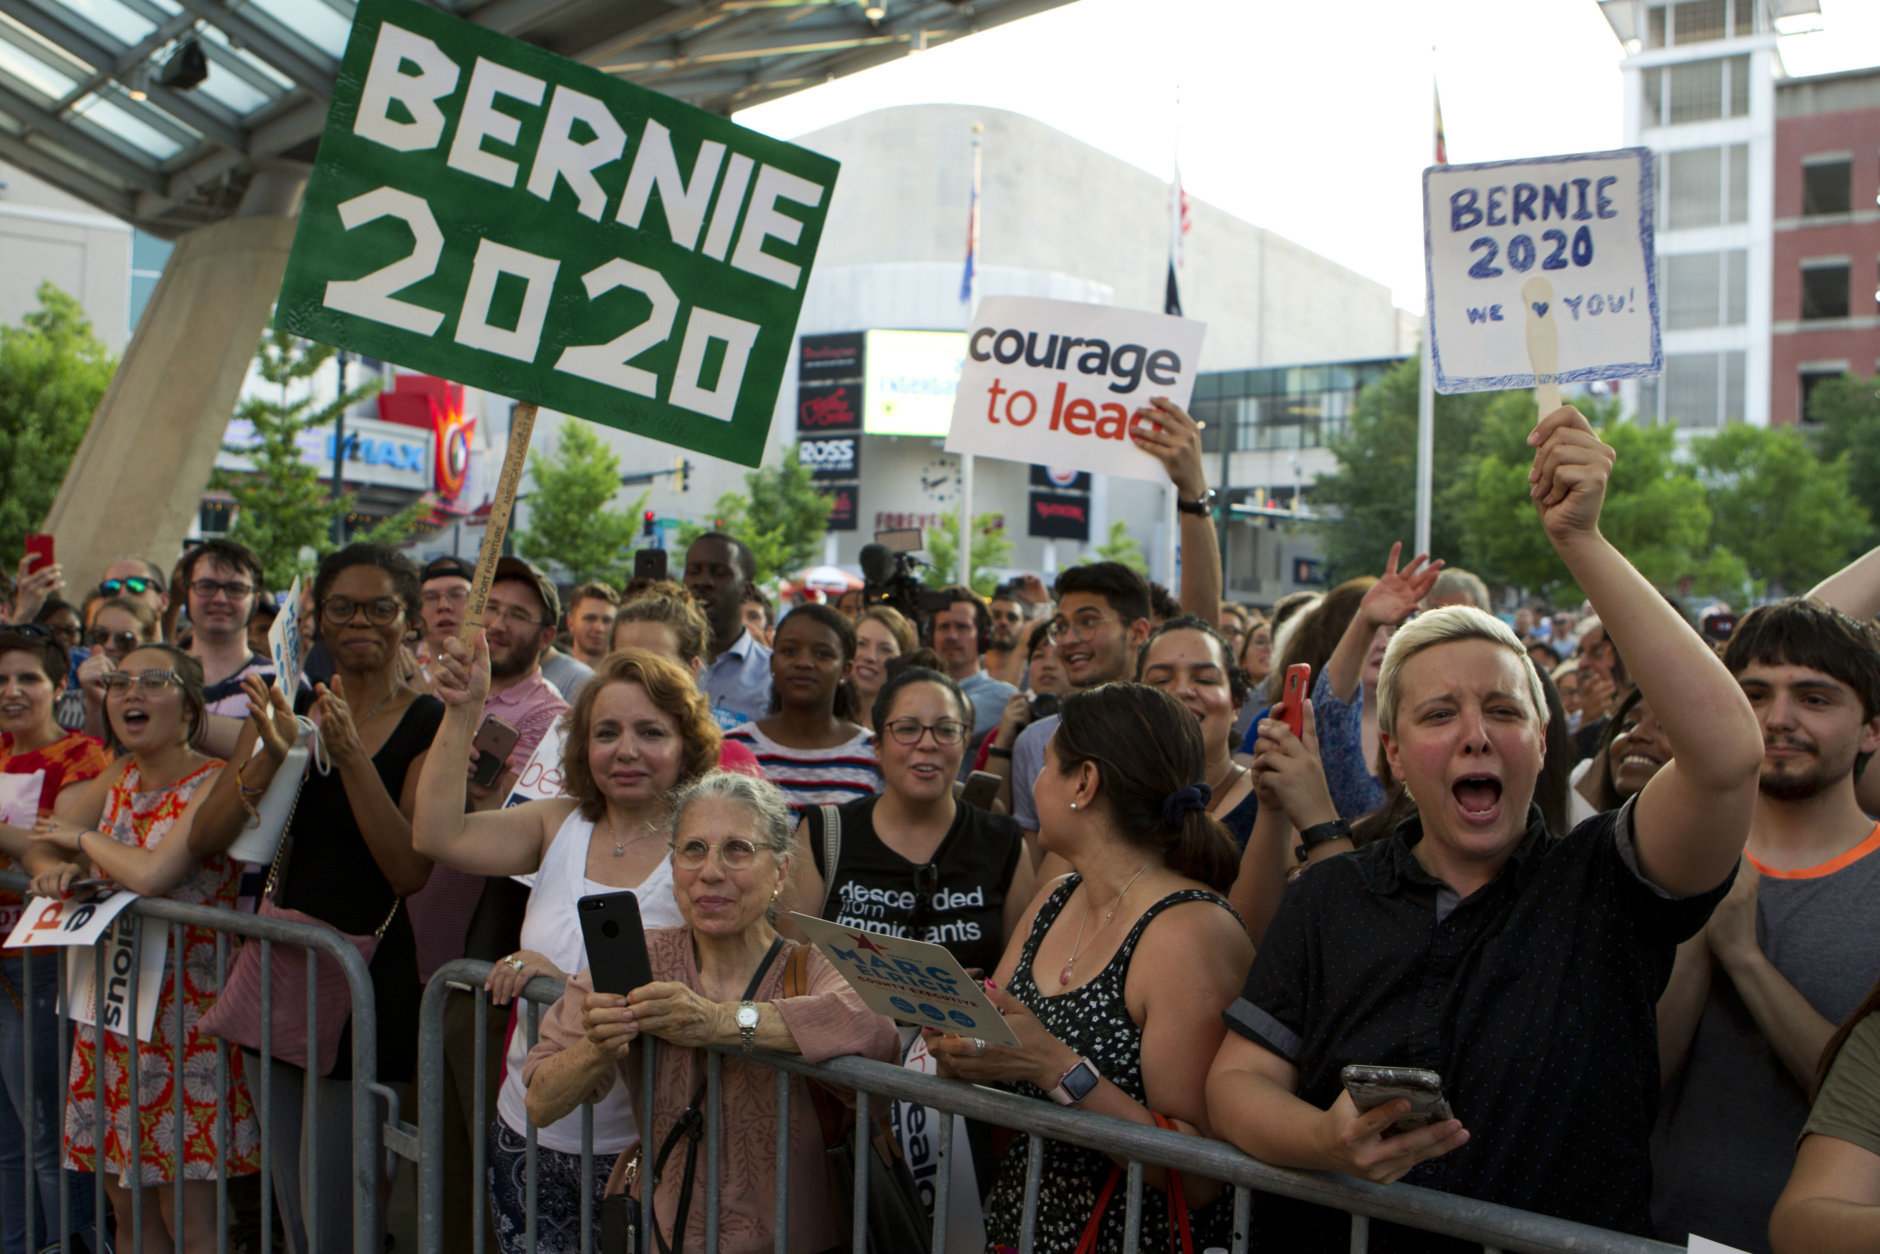 Supporters of Democrat Ben Jealous and Sen. Bernie Sanders, I-Vt. cheer during a gubernatorial campaign rally in Maryland's Democratic primary at downtown Silver Spring, Md., Monday, June 18, 2018. (AP Photo/Jose Luis Magana)